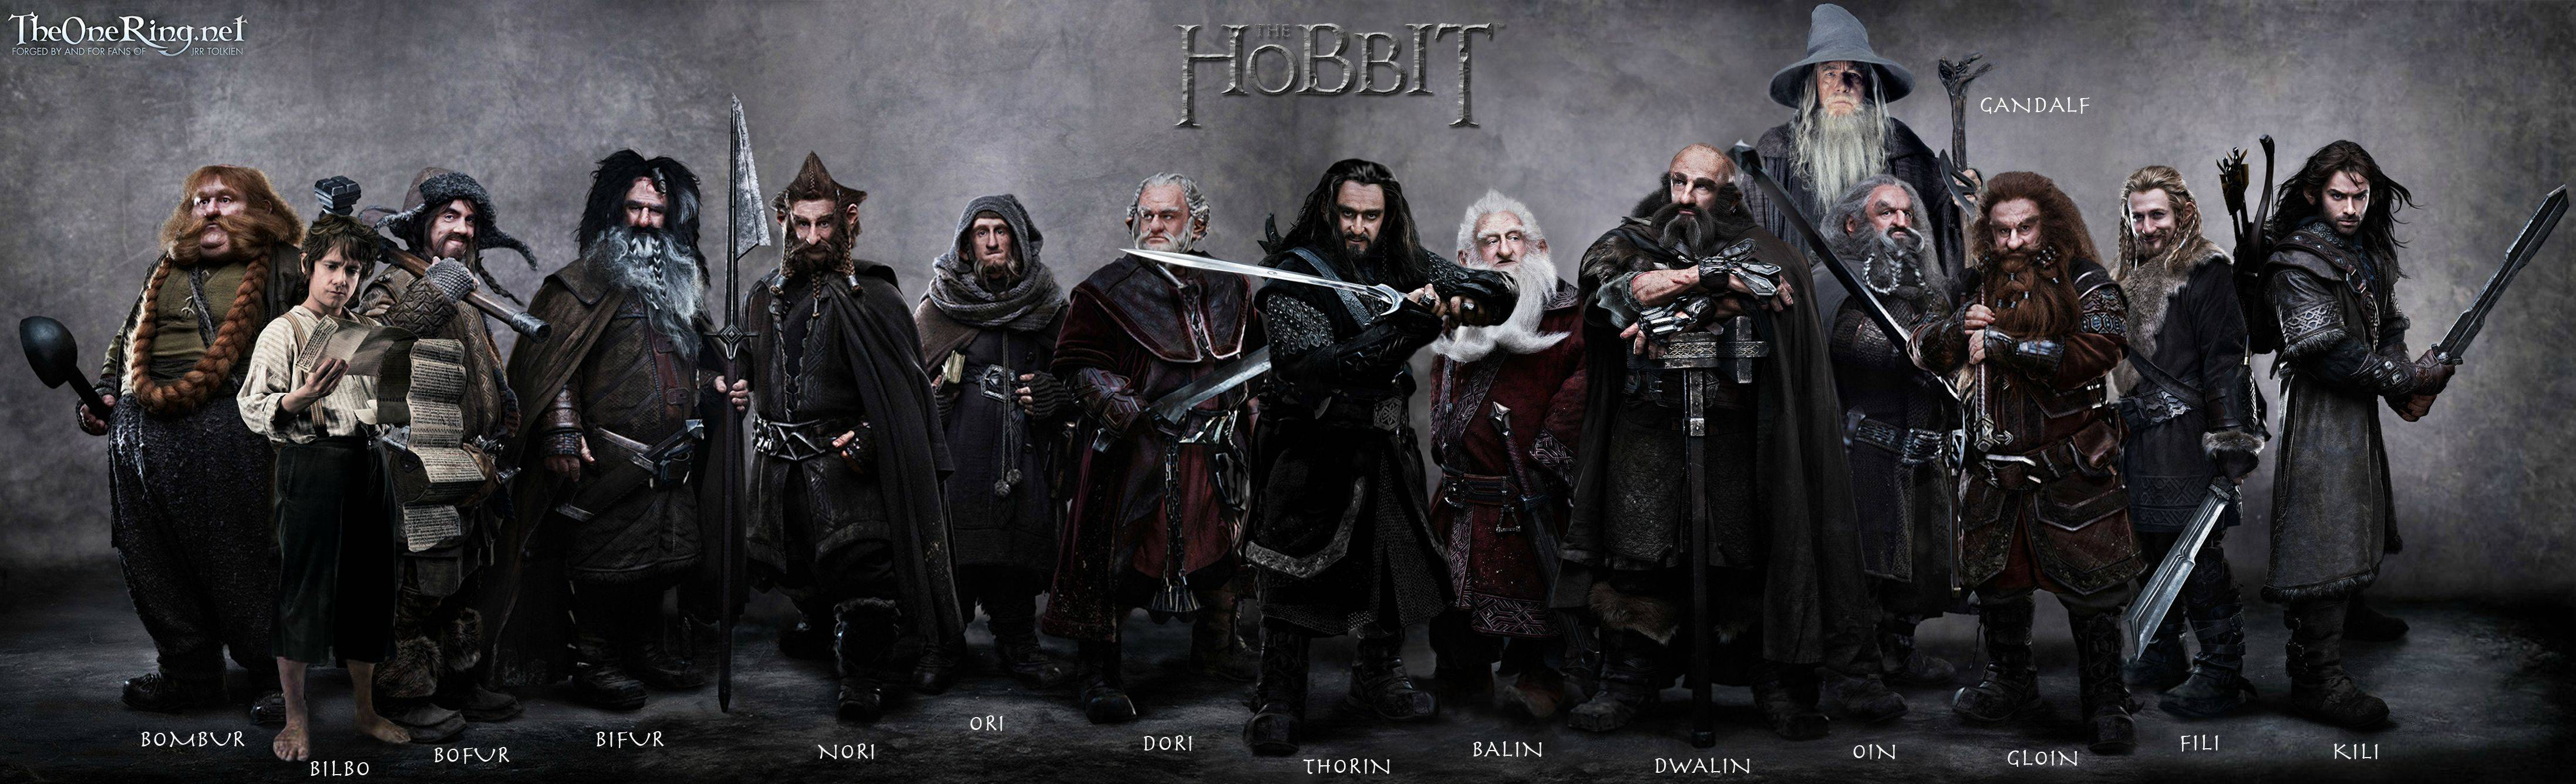 the hobbit wallpaper   The Hobbit The Desolation of Smaug Wallpaper 4387x1335